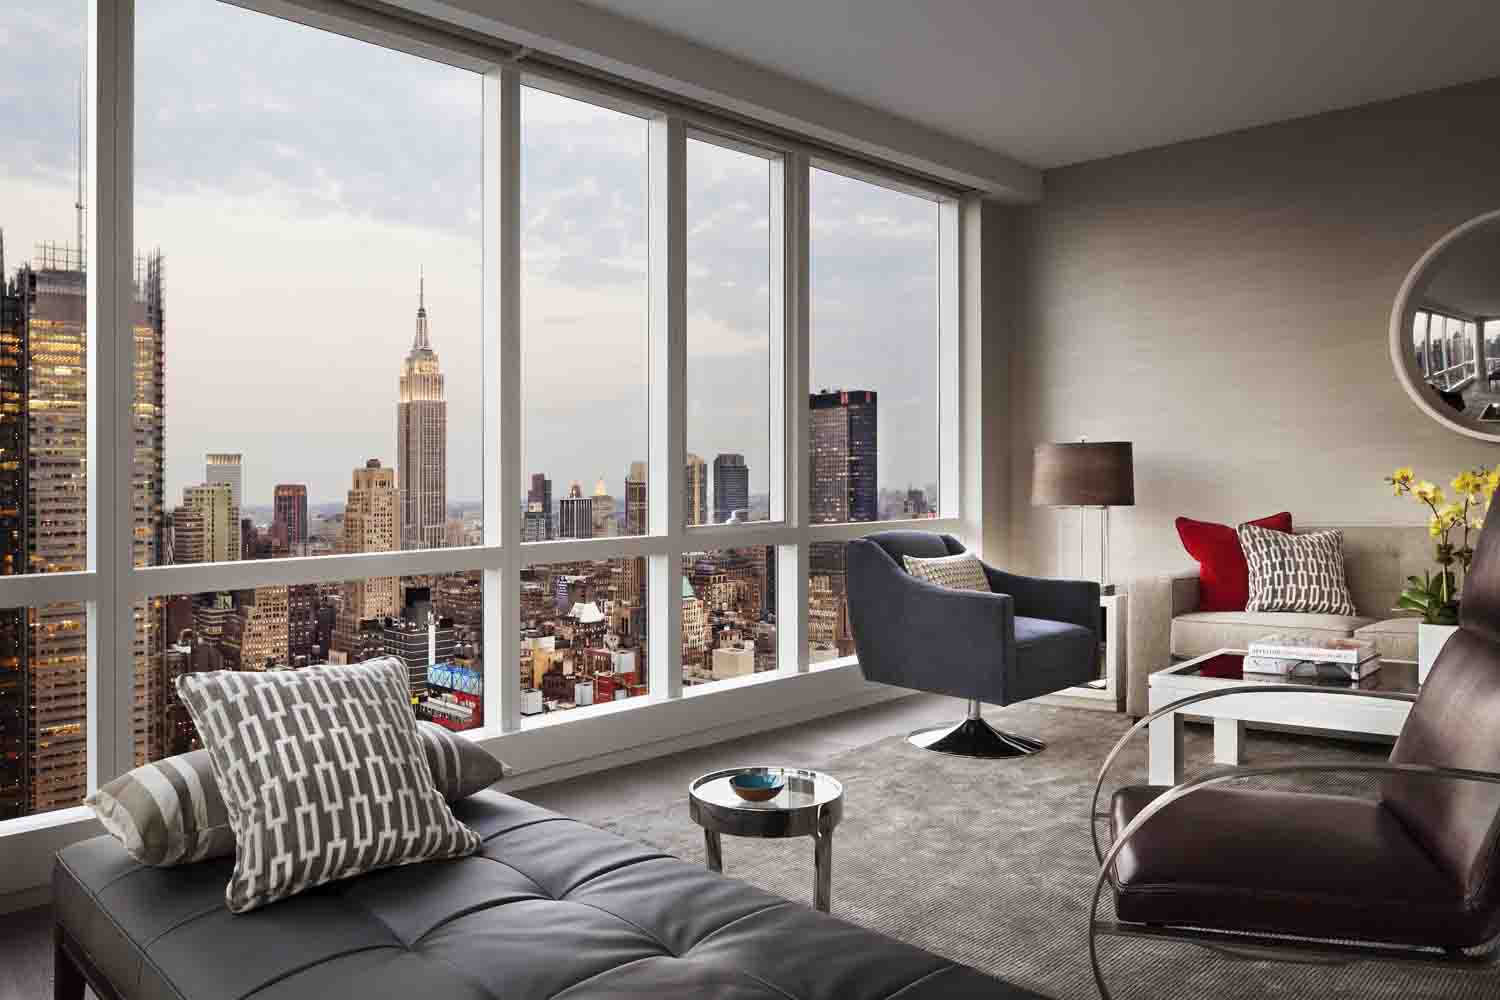 How to find a nyc apartment in the winter platinum - 3 bedroom apartments for sale nyc ...